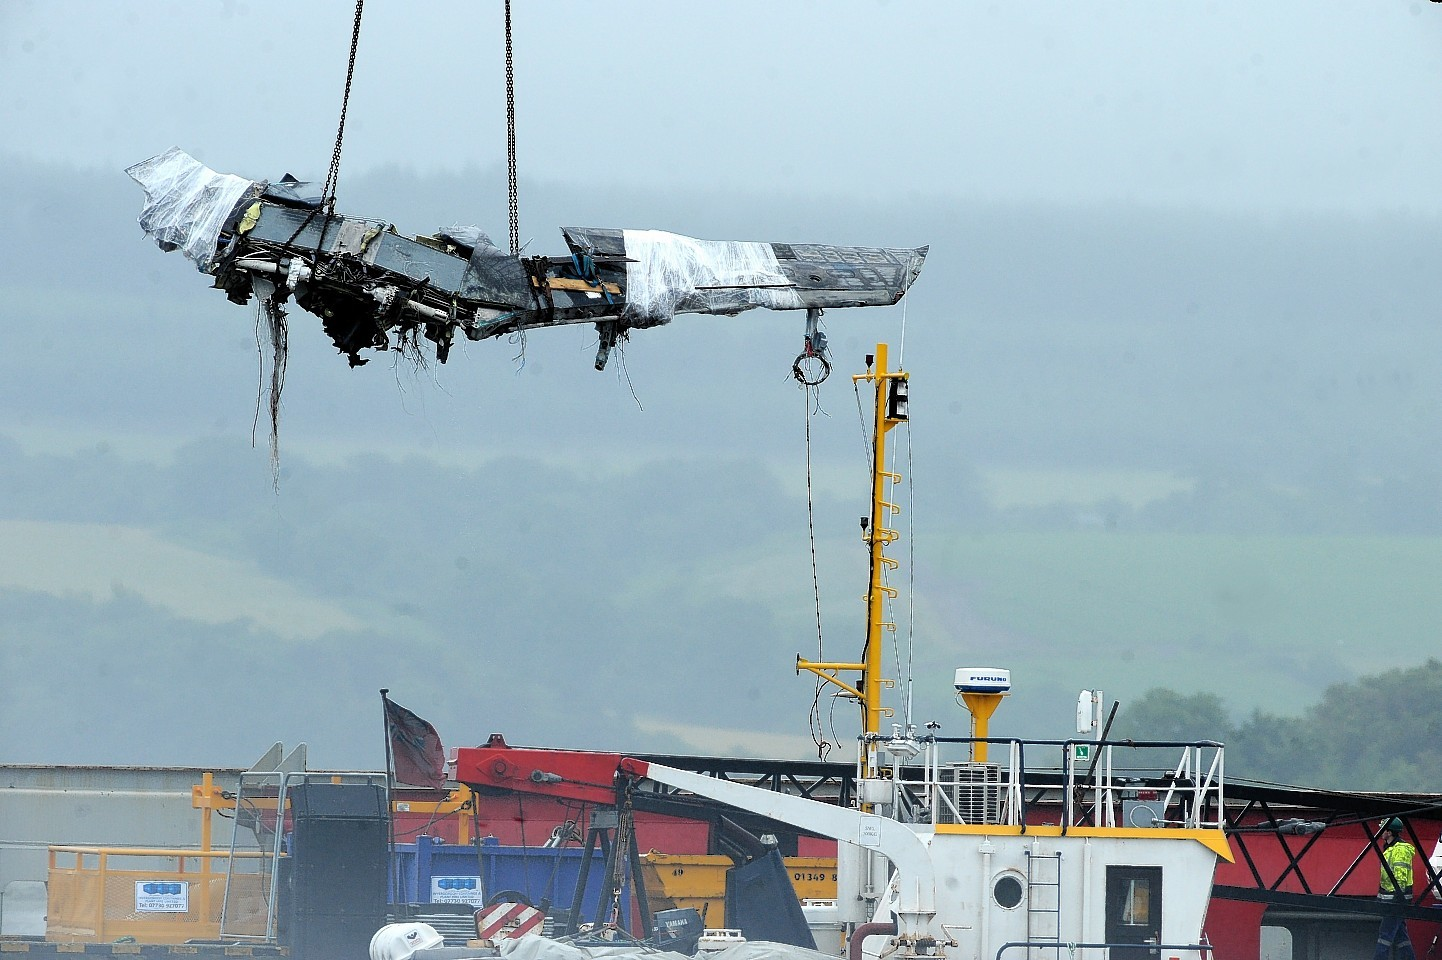 The wreckage of the two crashed RAF Tornados being brought to shore